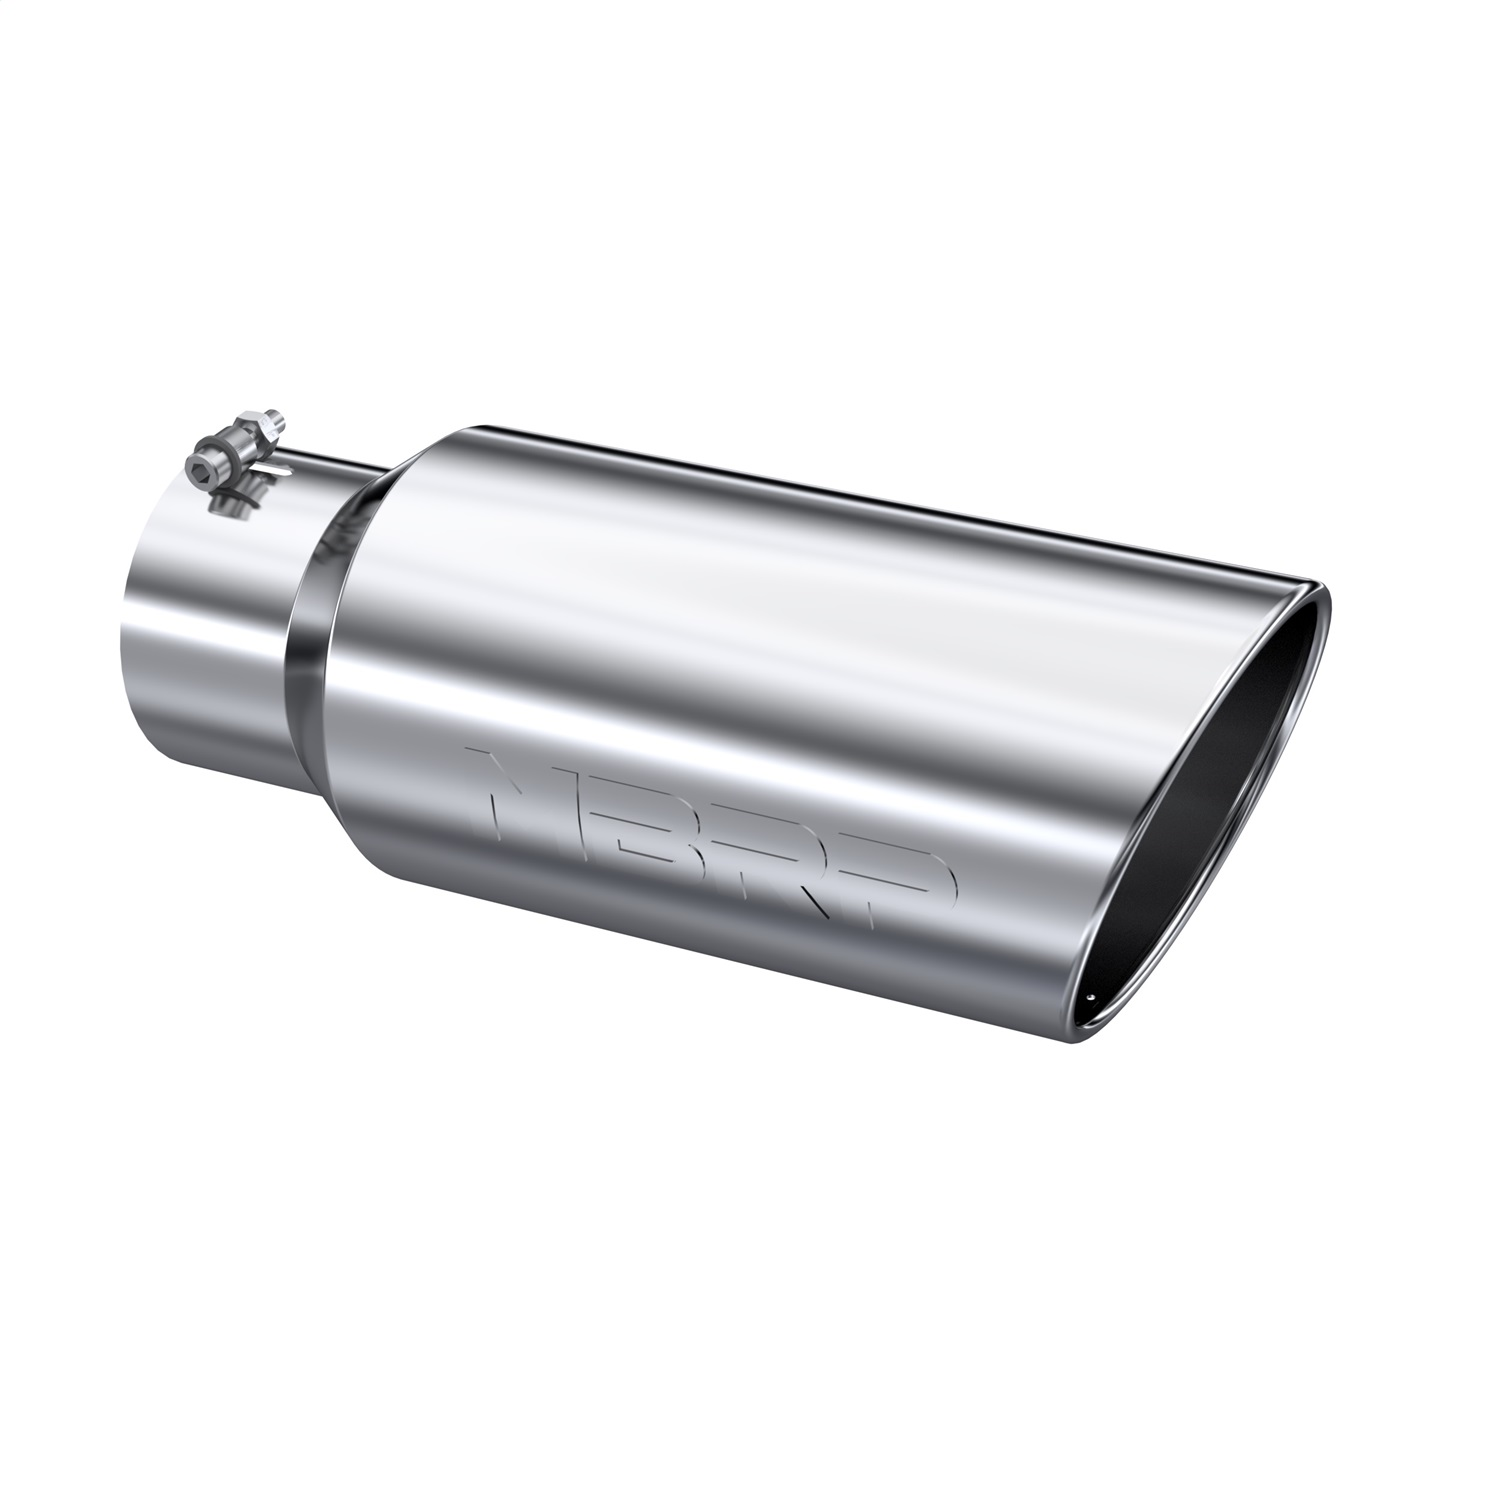 MBRP Exhaust Exhaust Tail Pipe Tip (T5127)